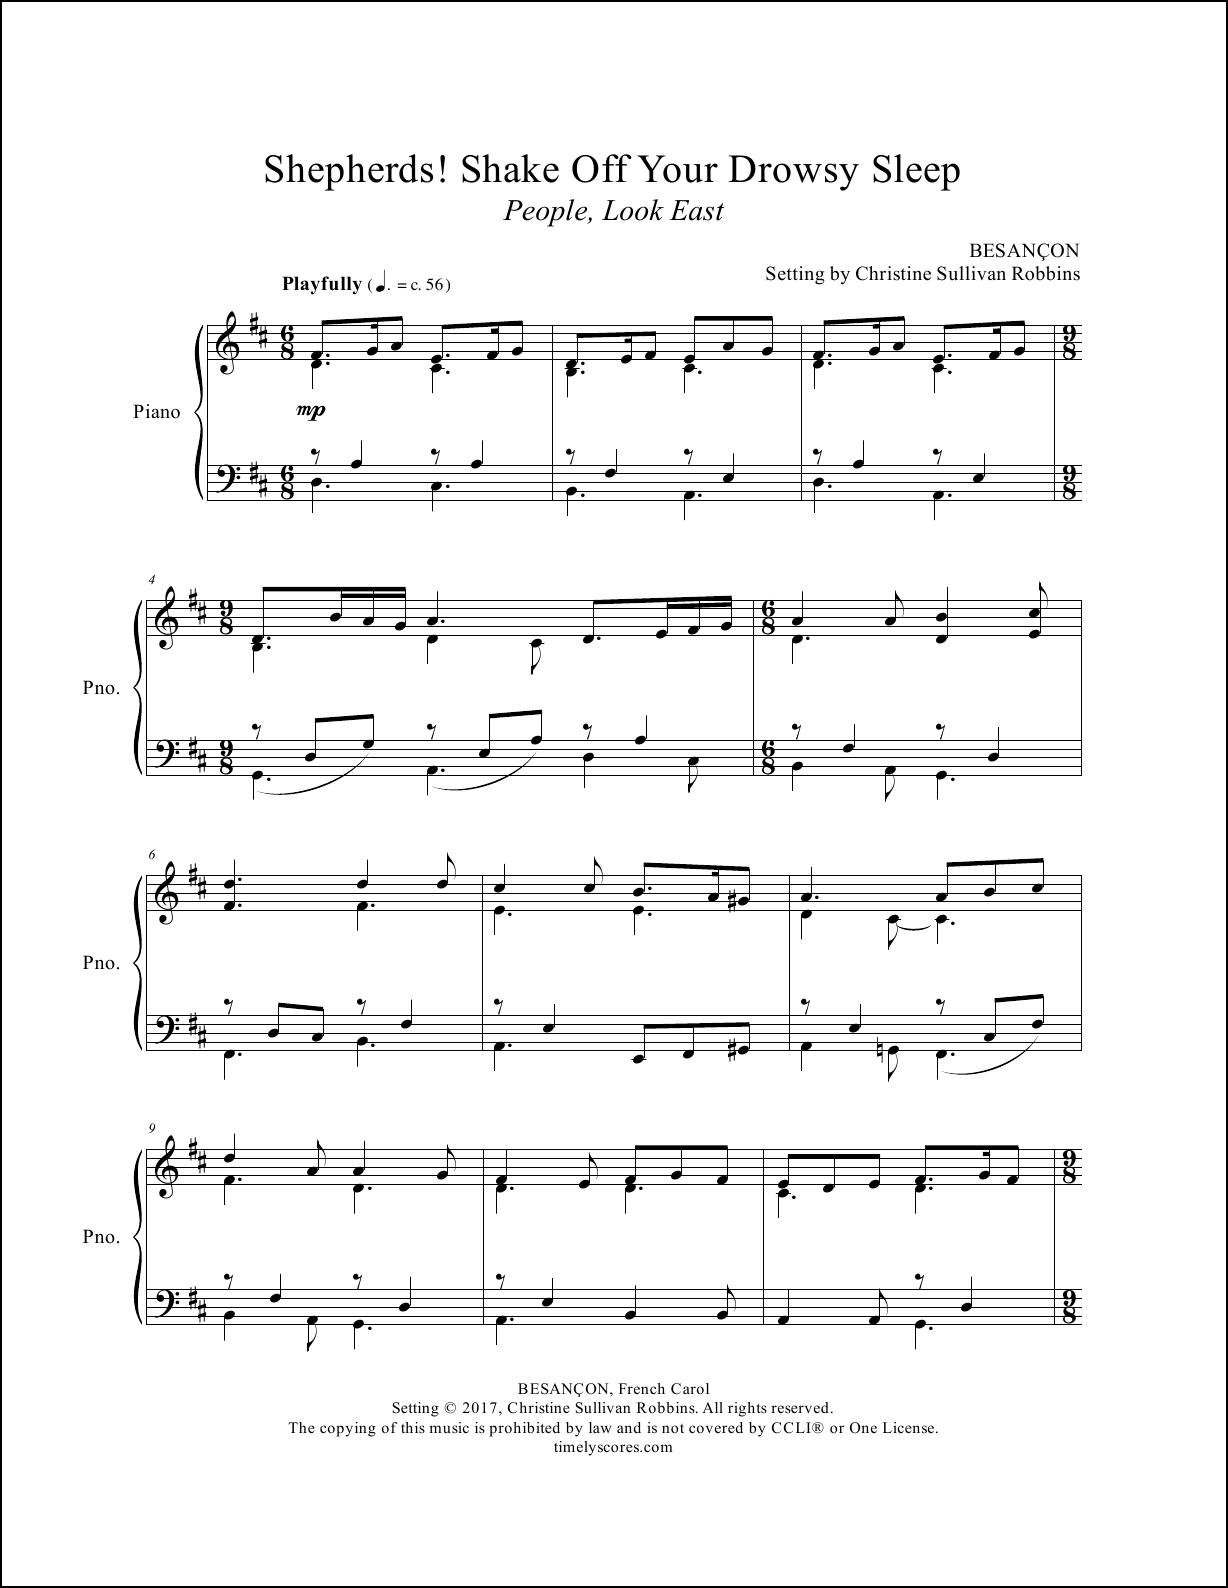 Shepherds Shake Off Your Drowsy Sleep (People Look East) Piano Sheet Music